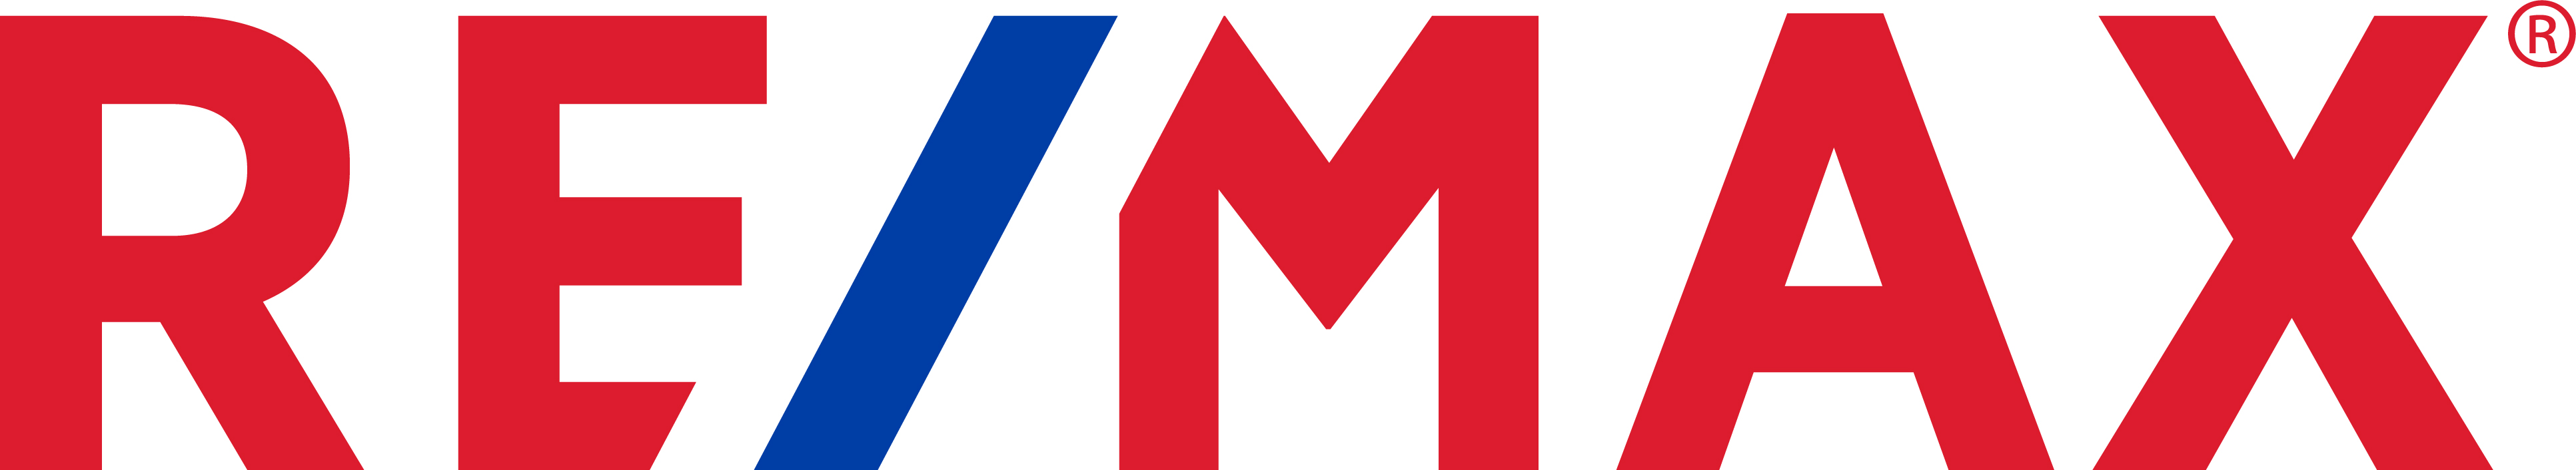 RE/MAX Southern Homes